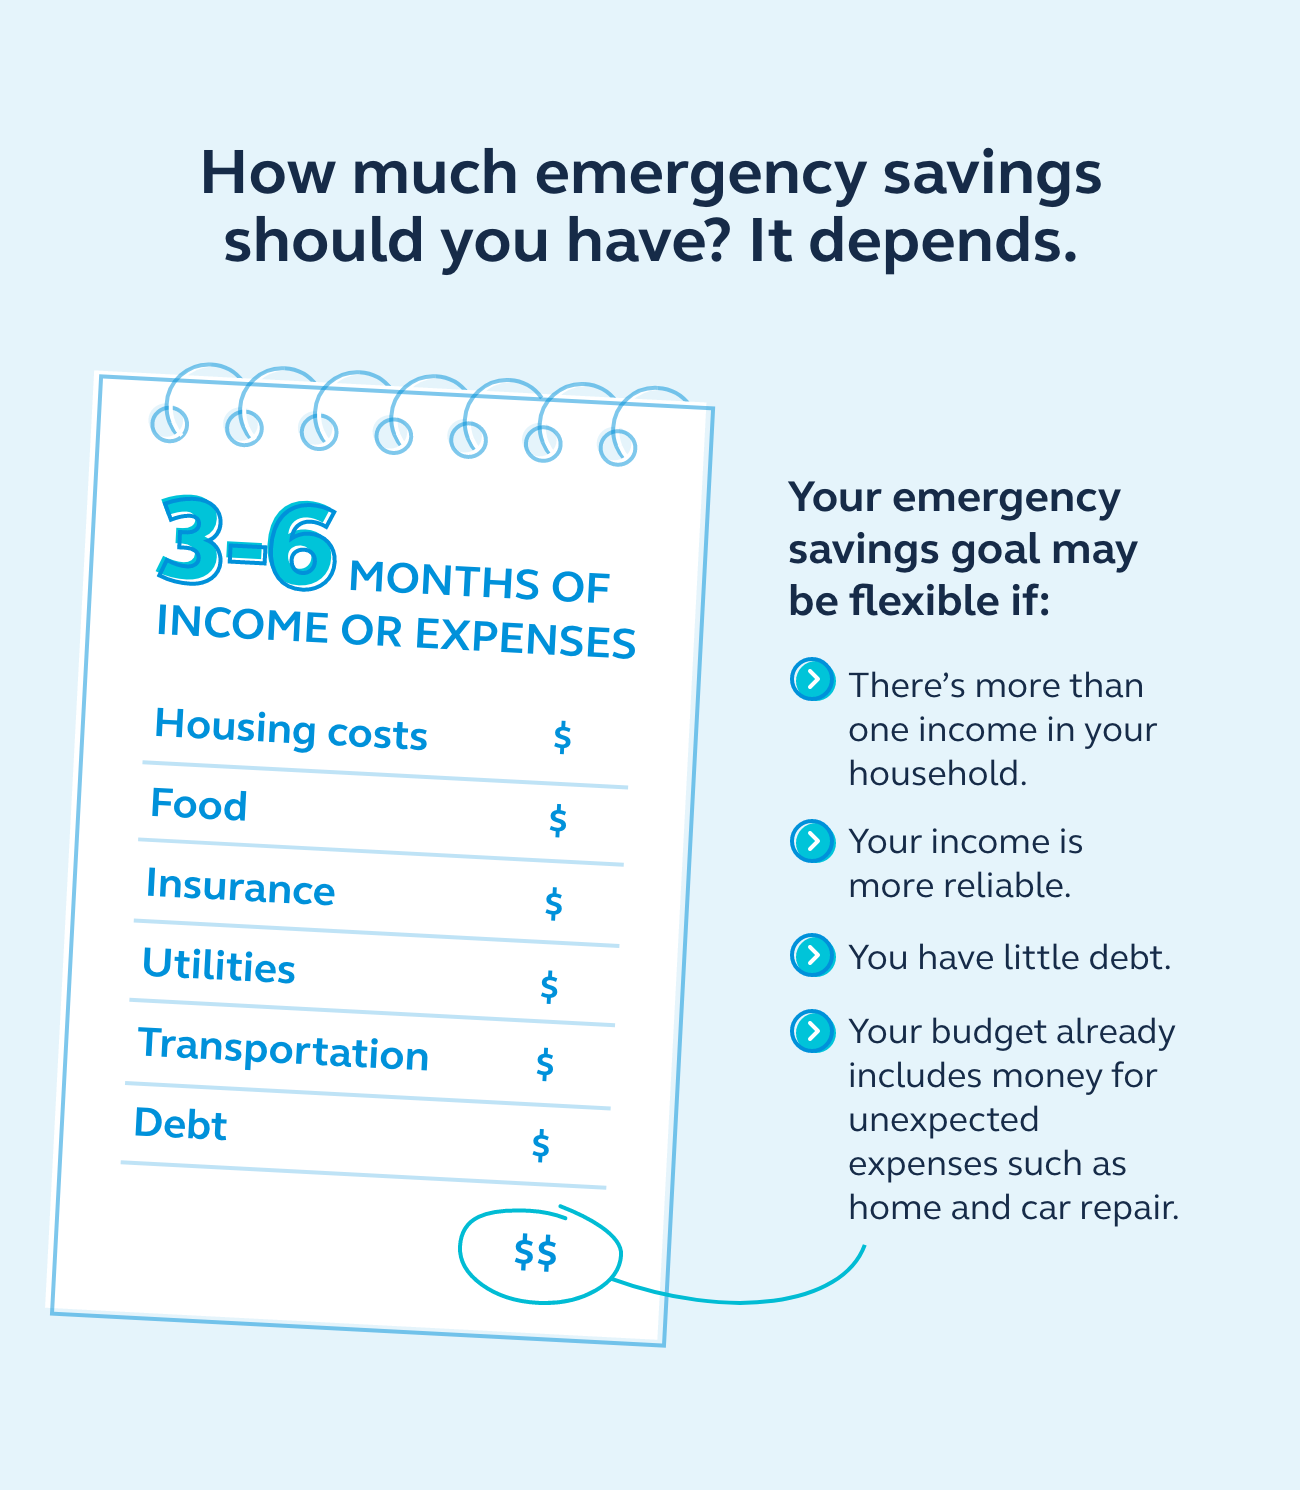 Graphic showing that you should have 3-6 months of income or expenses in your emergency savings.